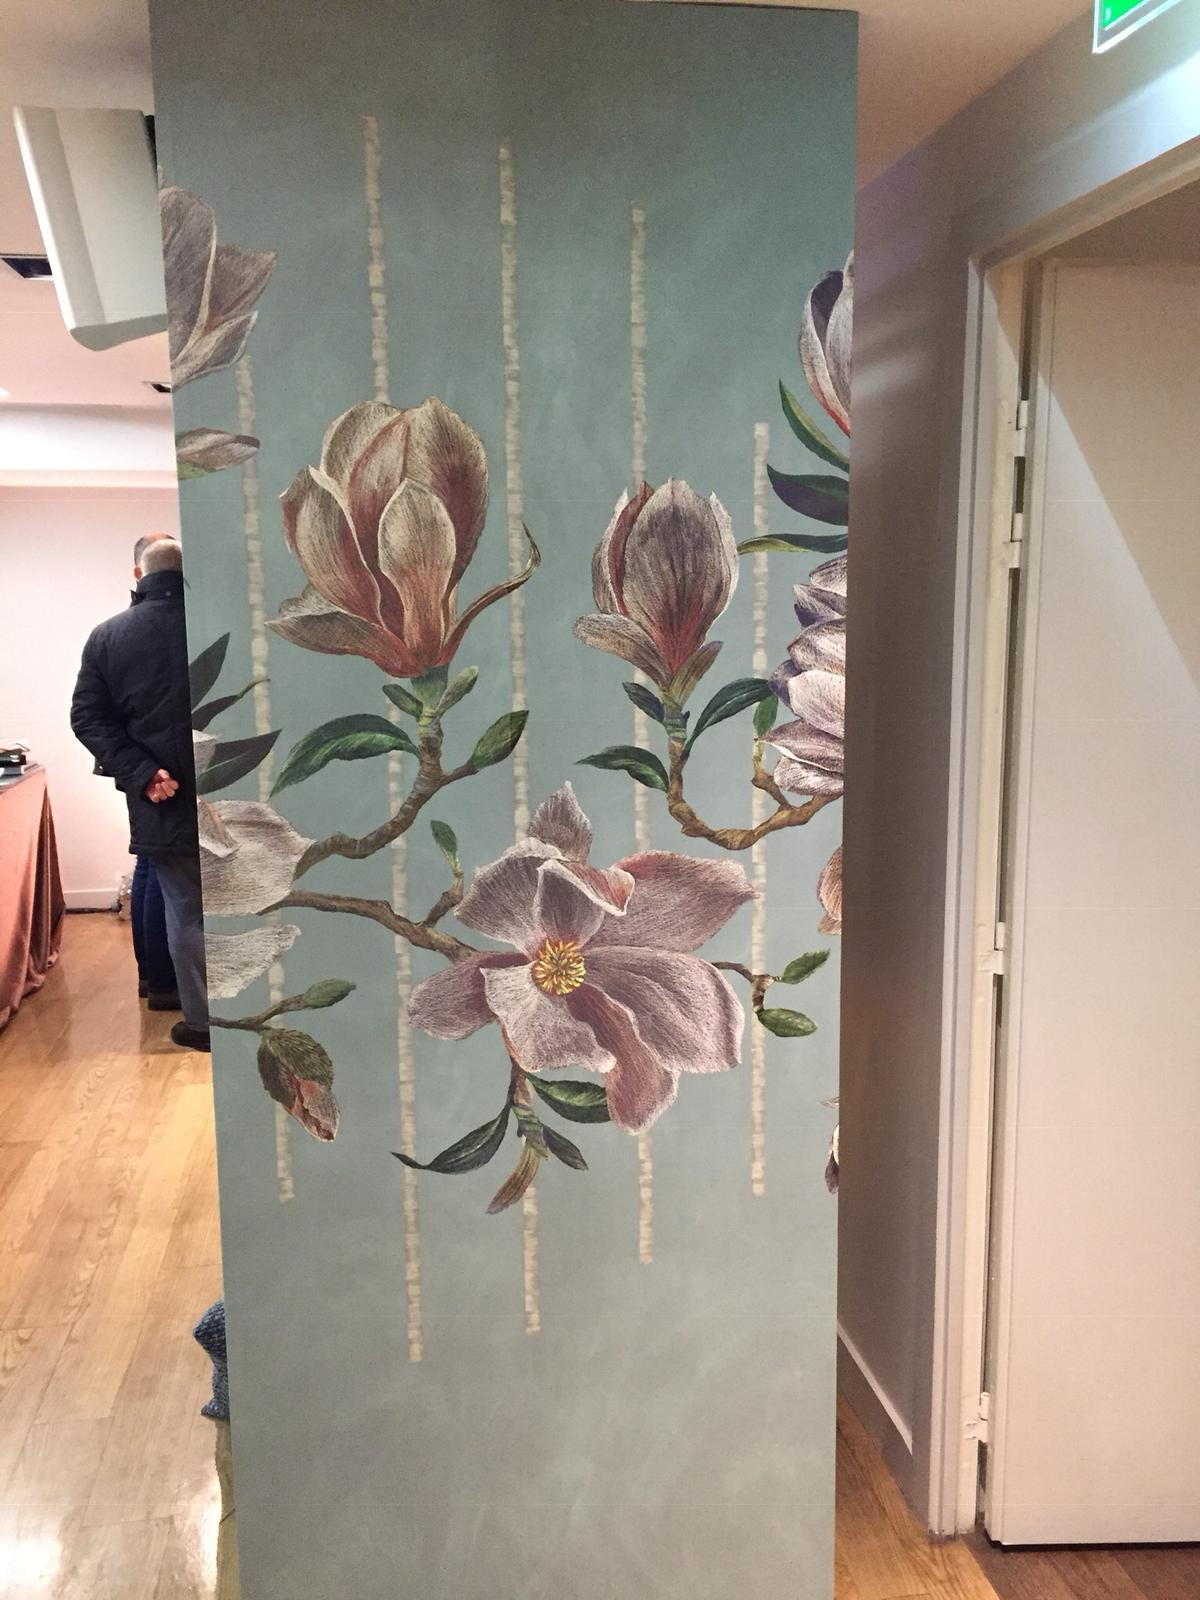 'Magnolia Frieze' from  Folium,  taken at  Maison & Objet 2019  by Calico Interiors